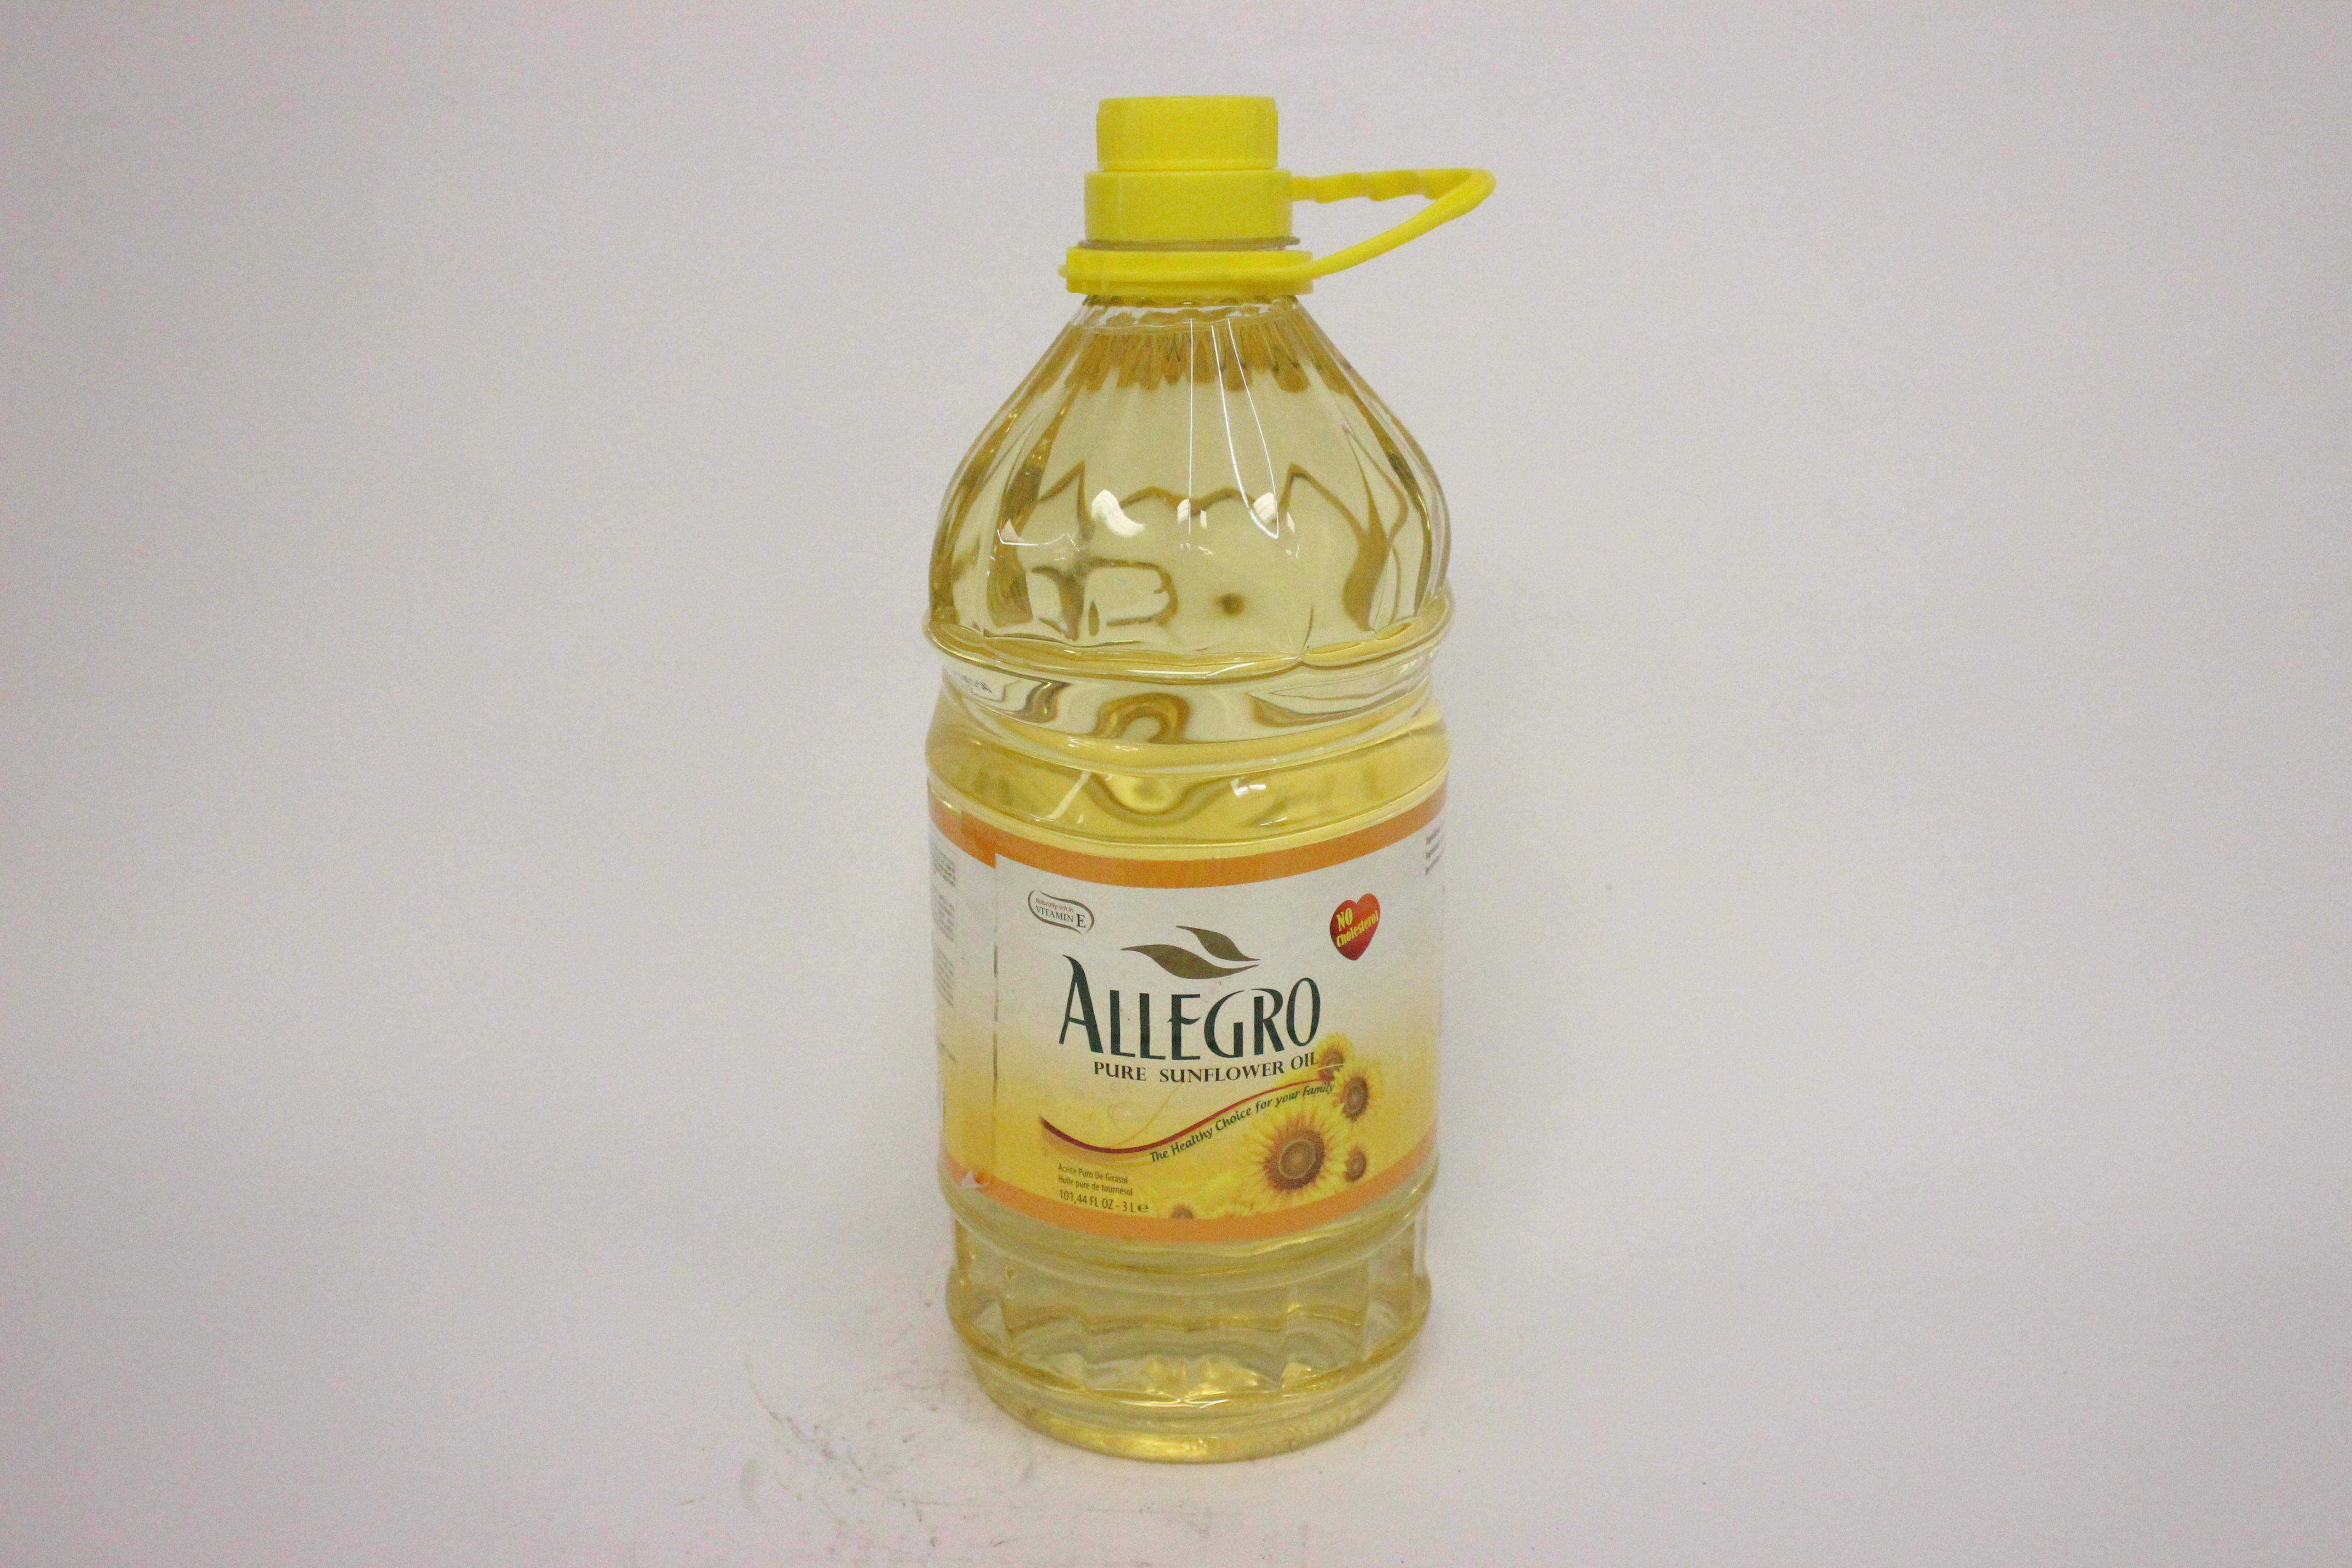 Allegro Pure Sunflower Oil 5 L